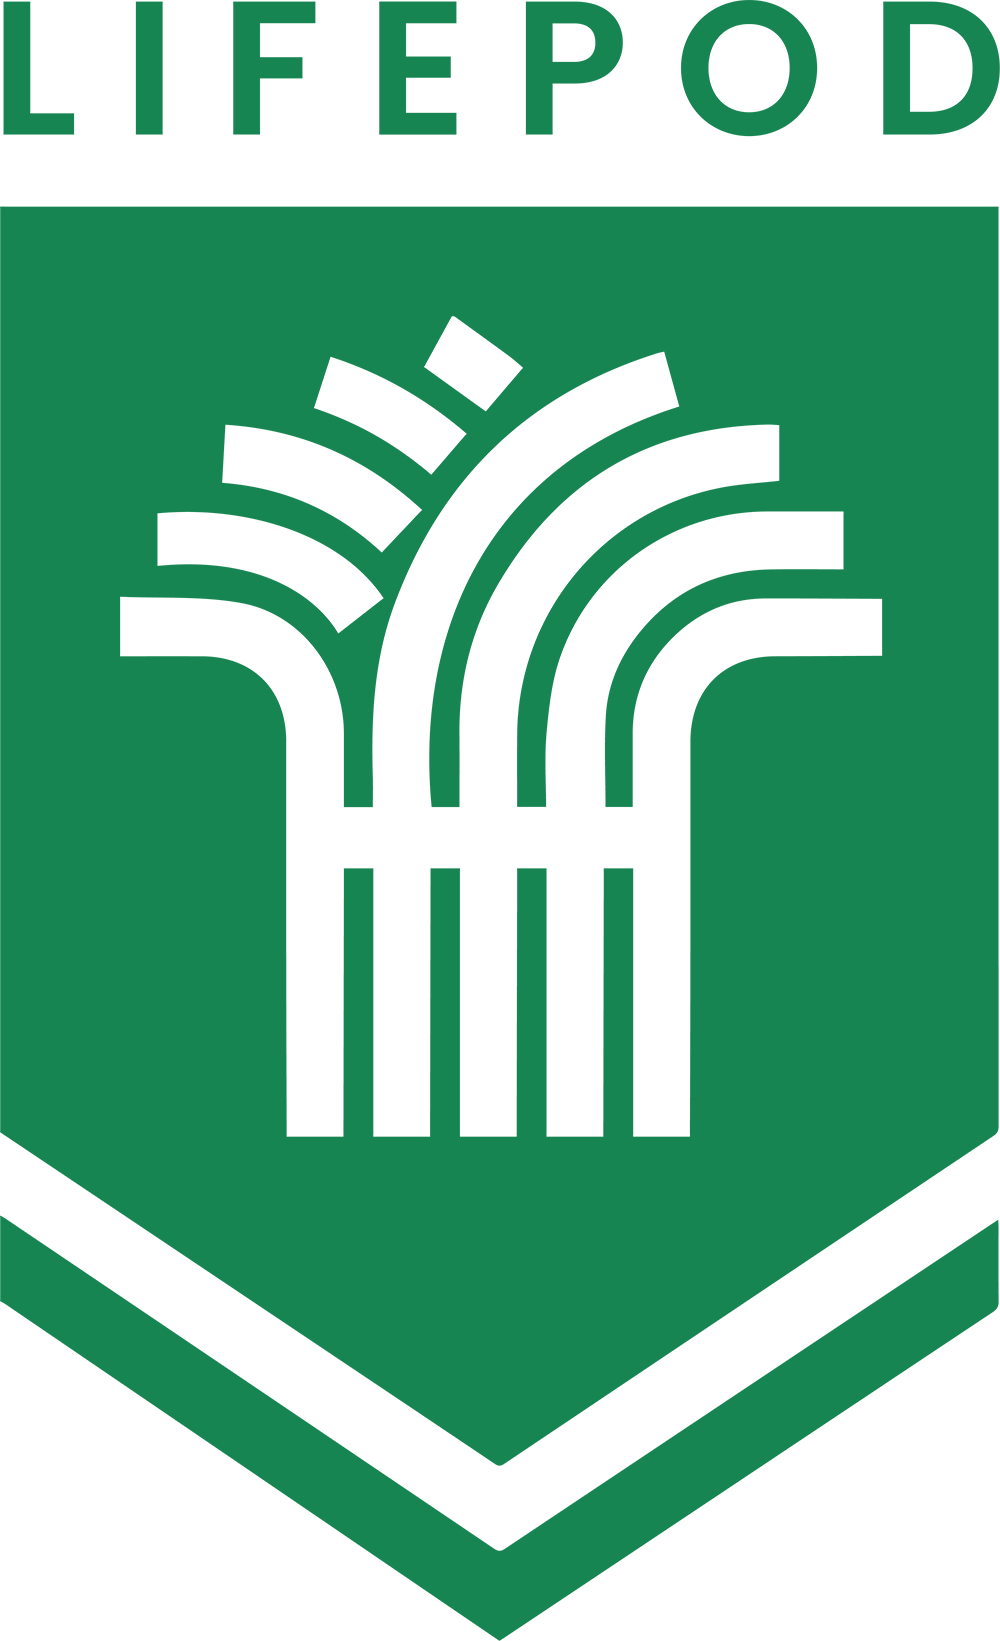 The LifePod Logo: A Banner with a lower chevron featuring a bushel of wheat capped by the word LifePod